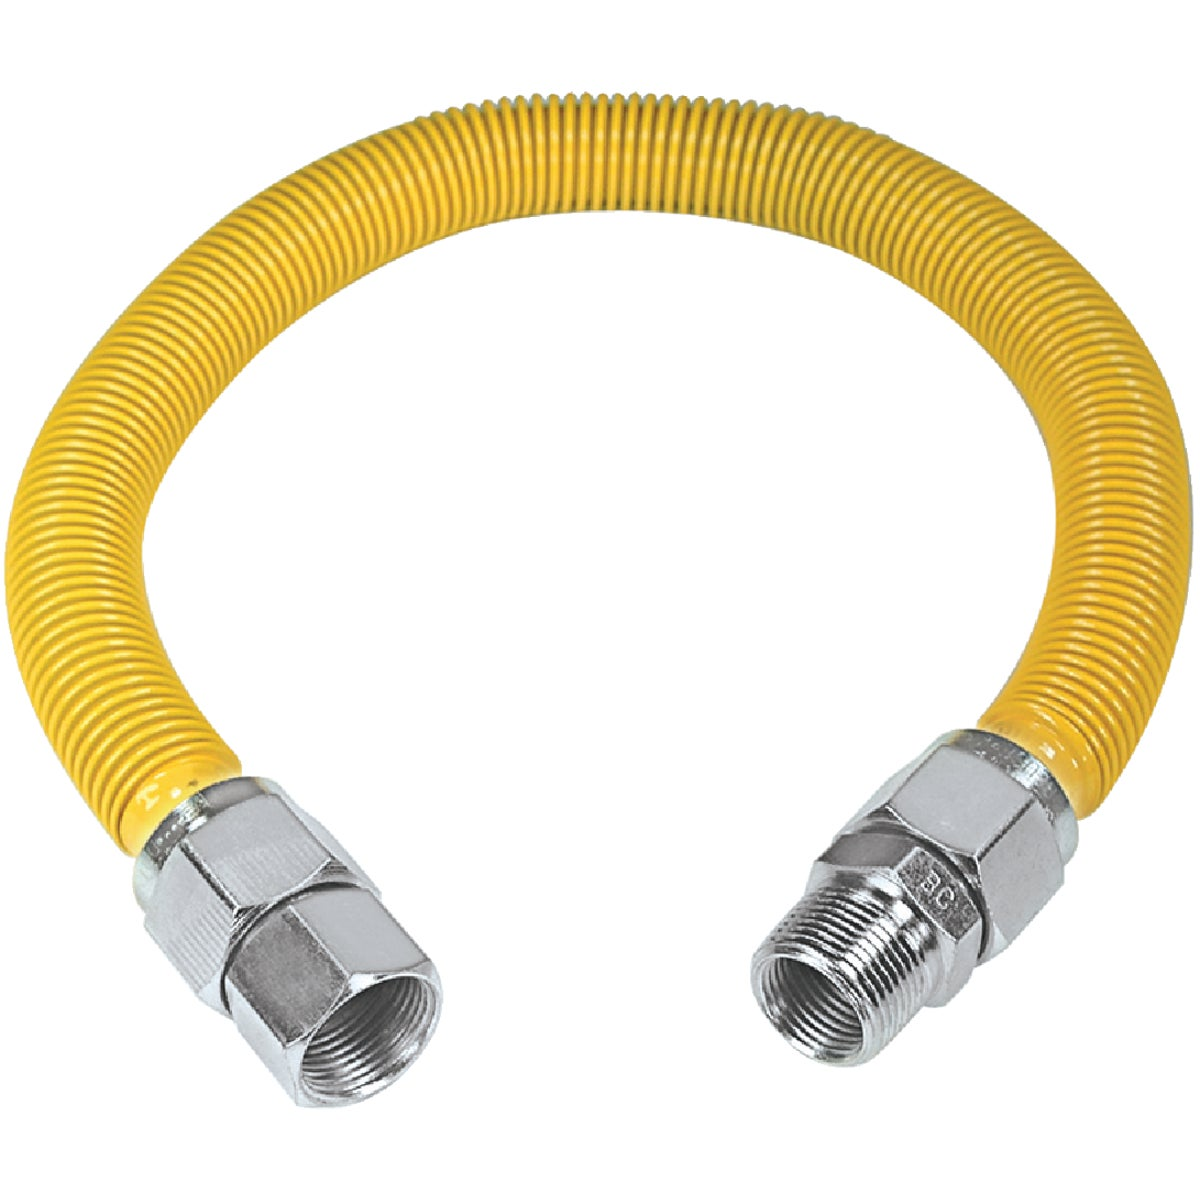 7/8X36 GAS CONNECTOR - CSSB1412-36 by Brass Craft